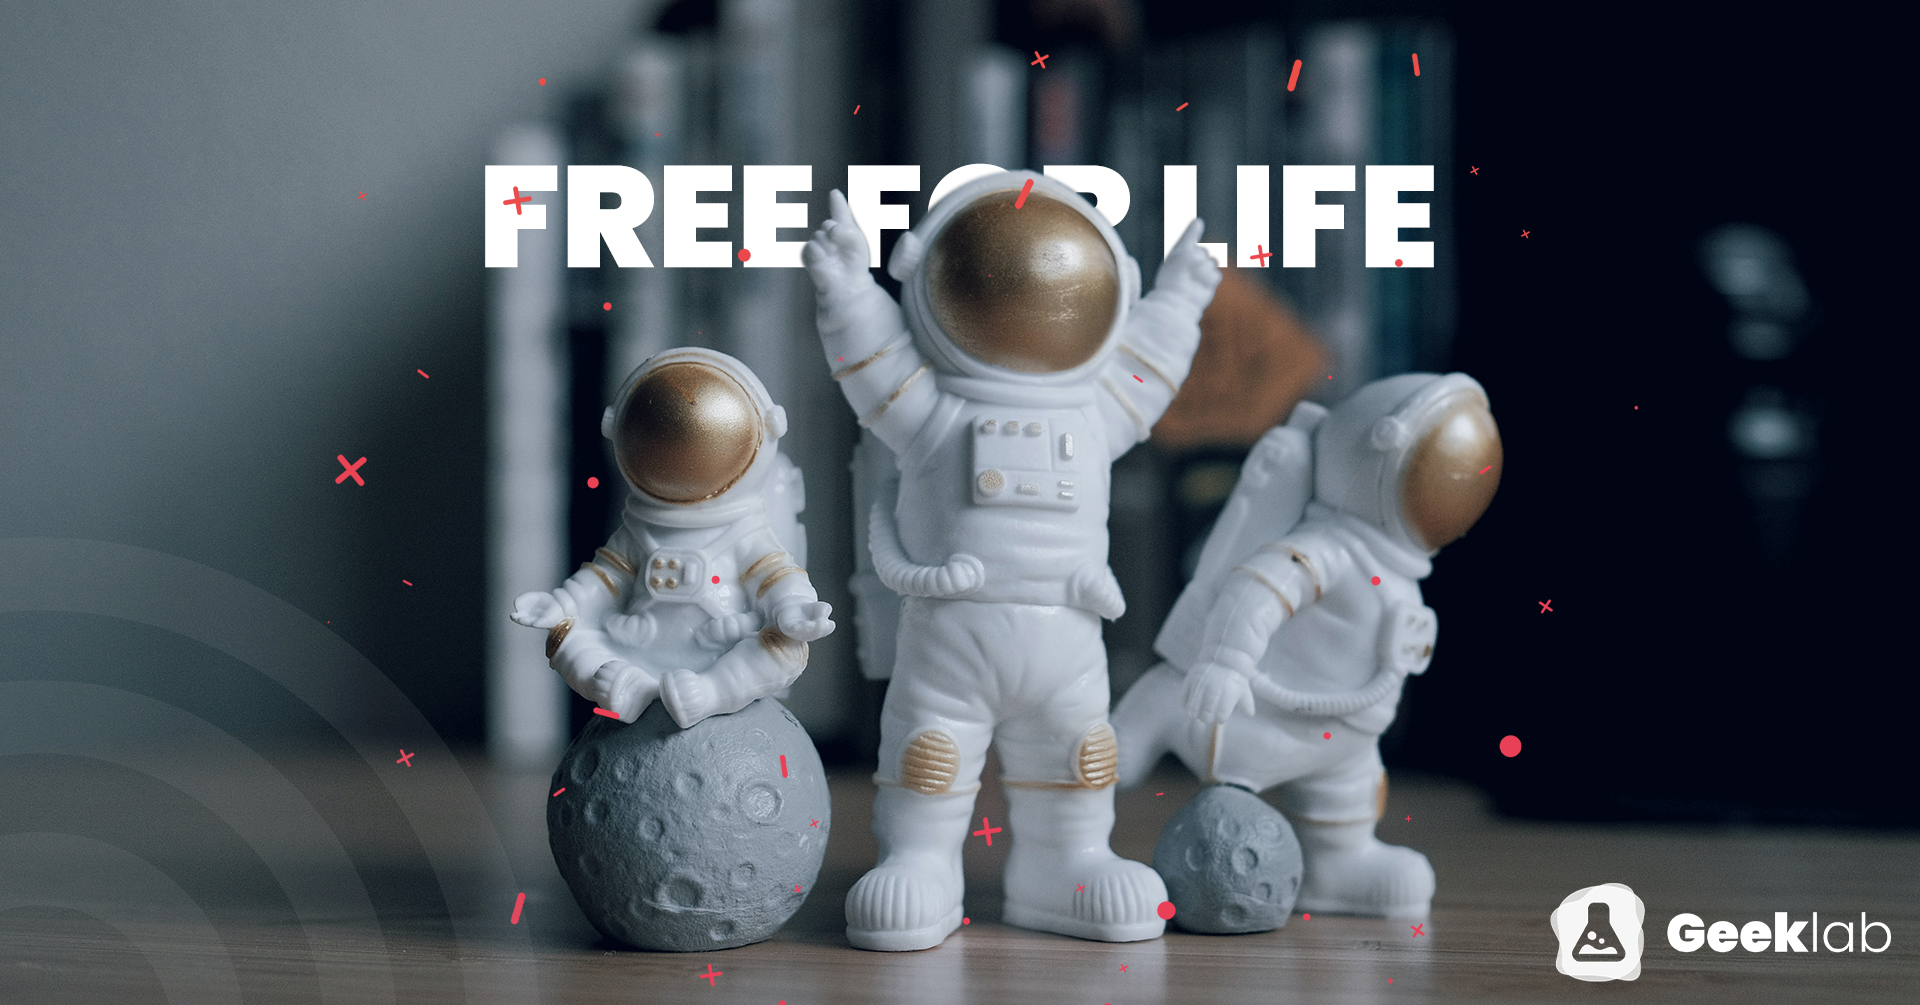 New: Geeklab Free for life